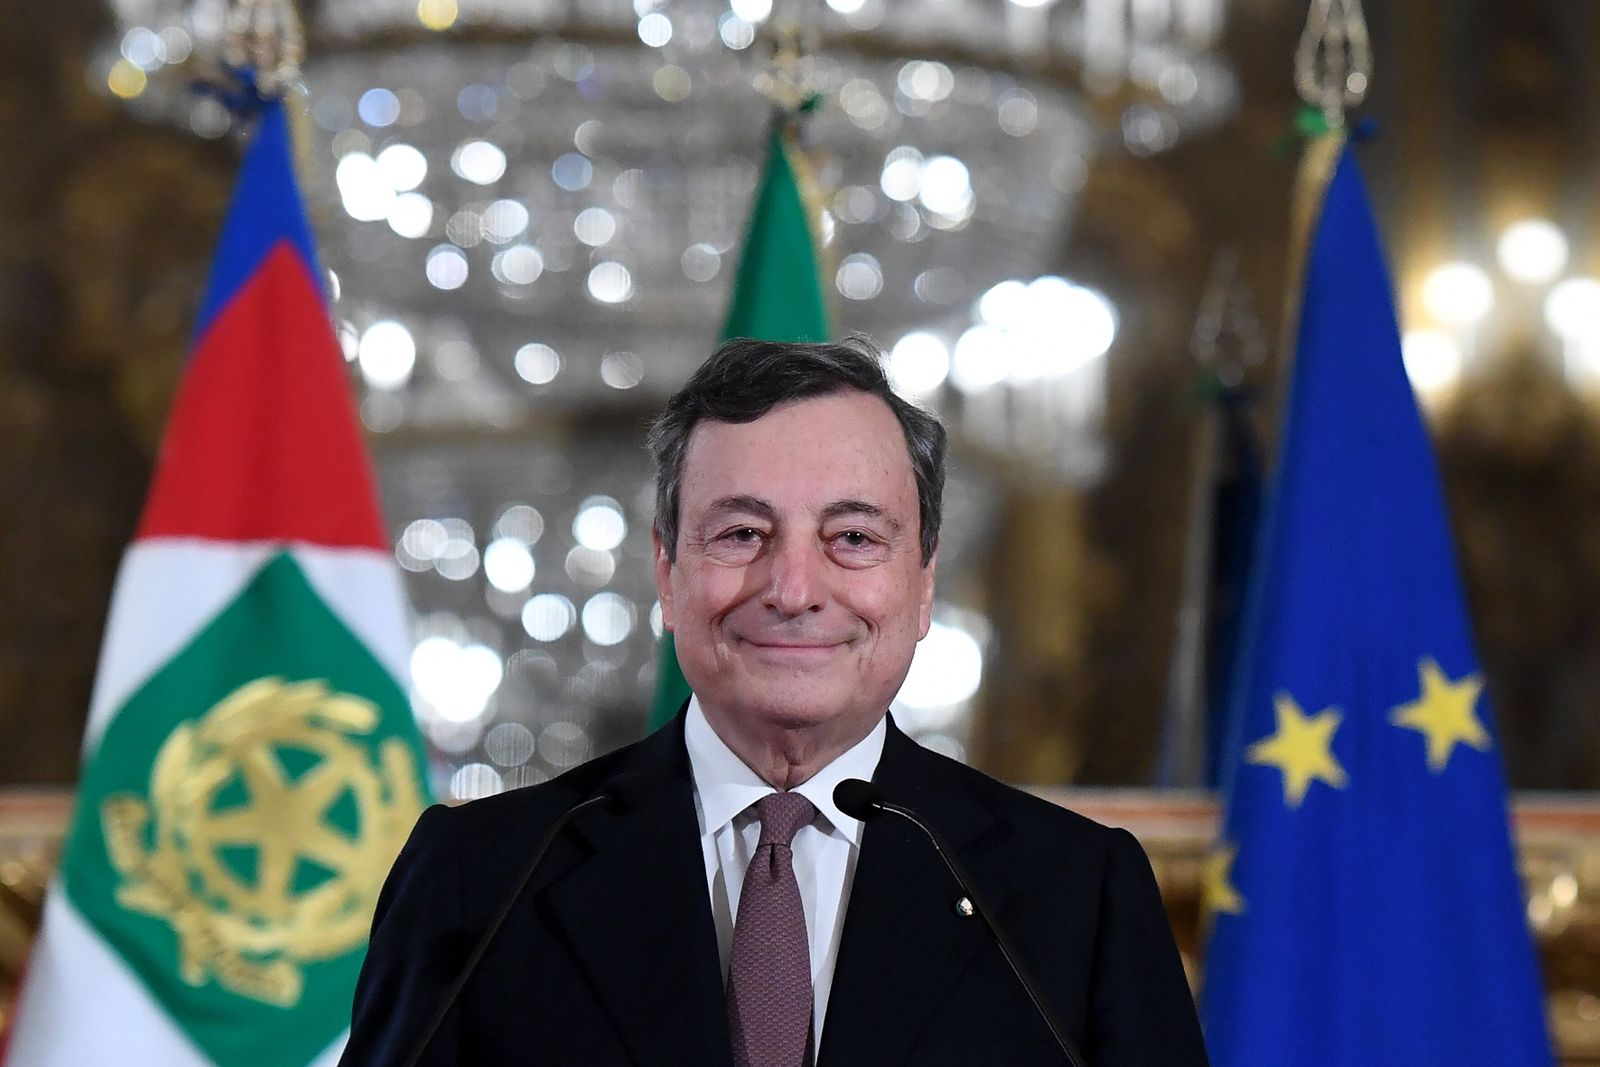 The Premier in charge Mario Draghi at the Quirinale to dissolve the reserve and to announce the list of Ministers. Rome(